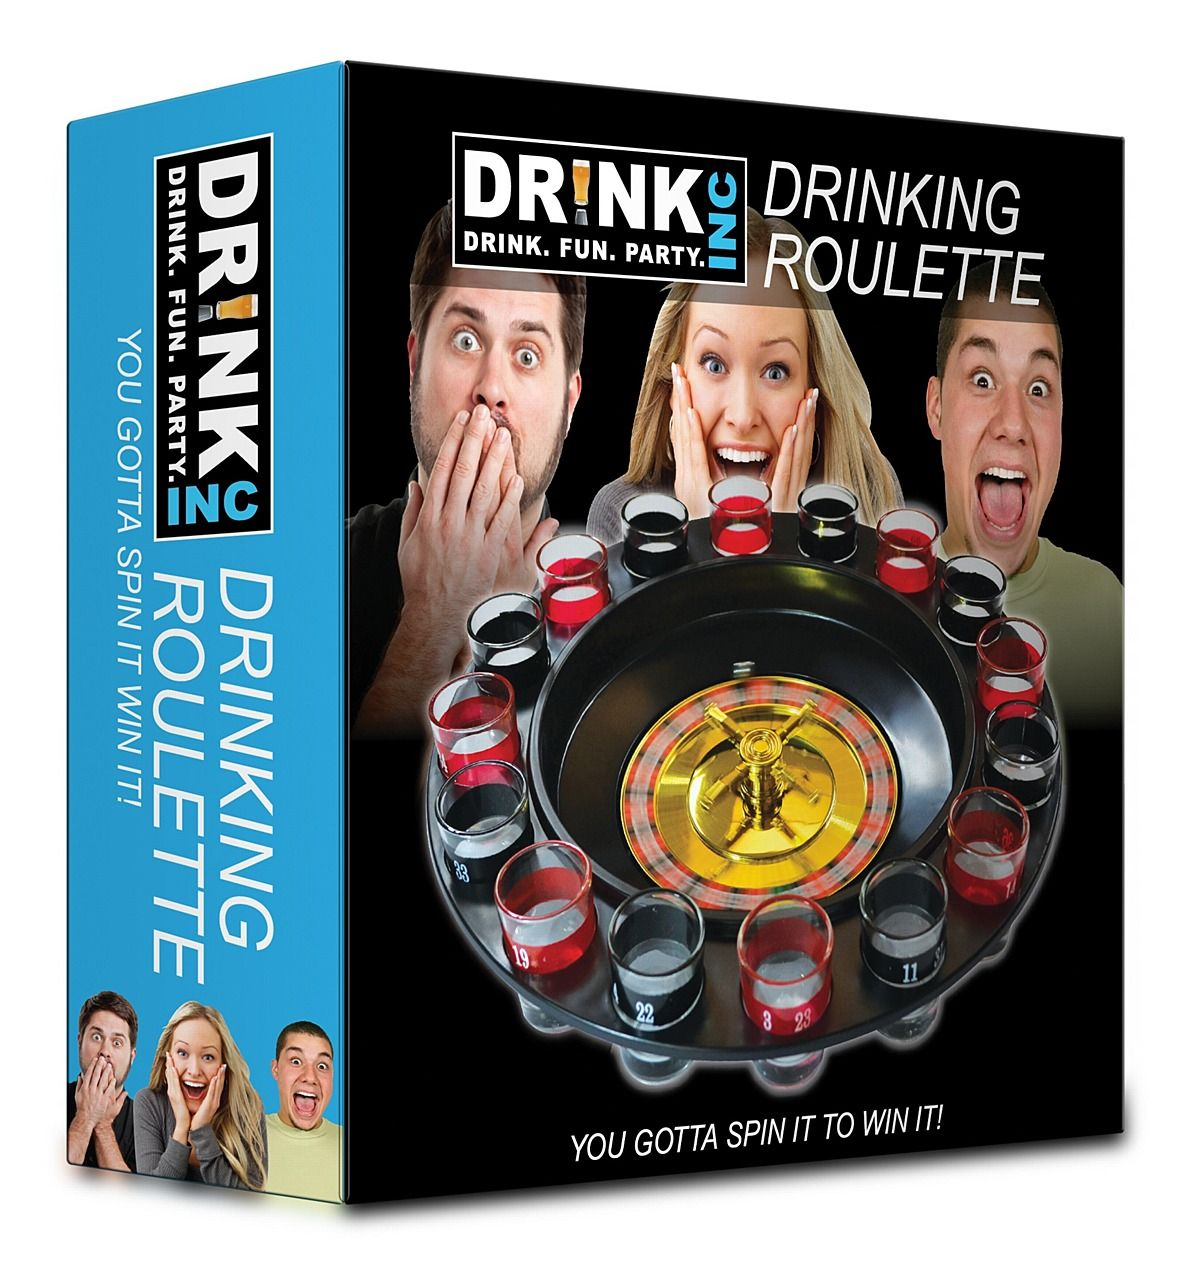 Drinking Roulette Game at PartyWorld Costume Shop